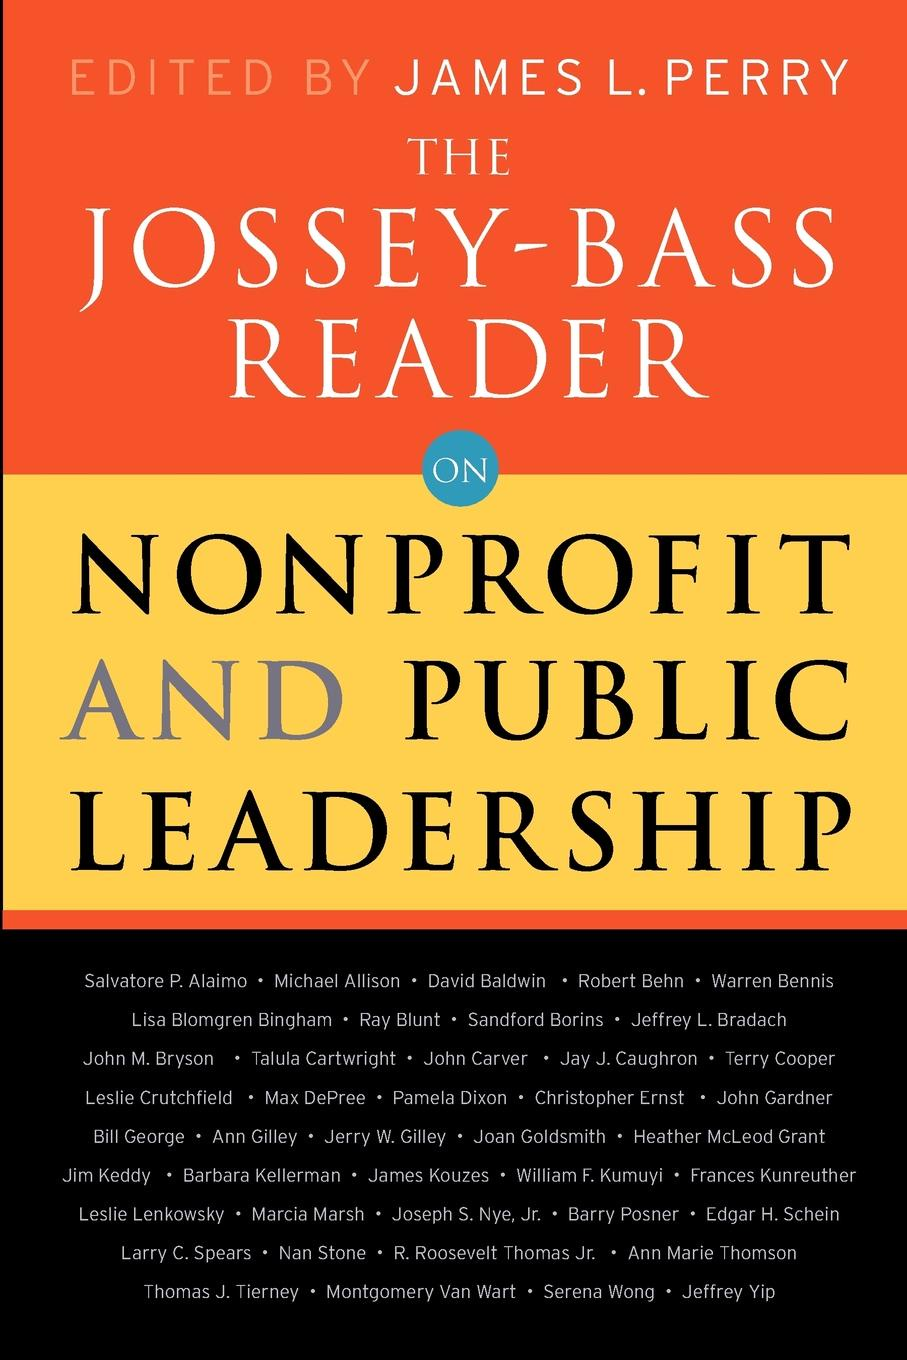 Jossey-Bass Publishers, Lastjossey-Bass Publishers The Reader on Nonprofit and Public Leadership